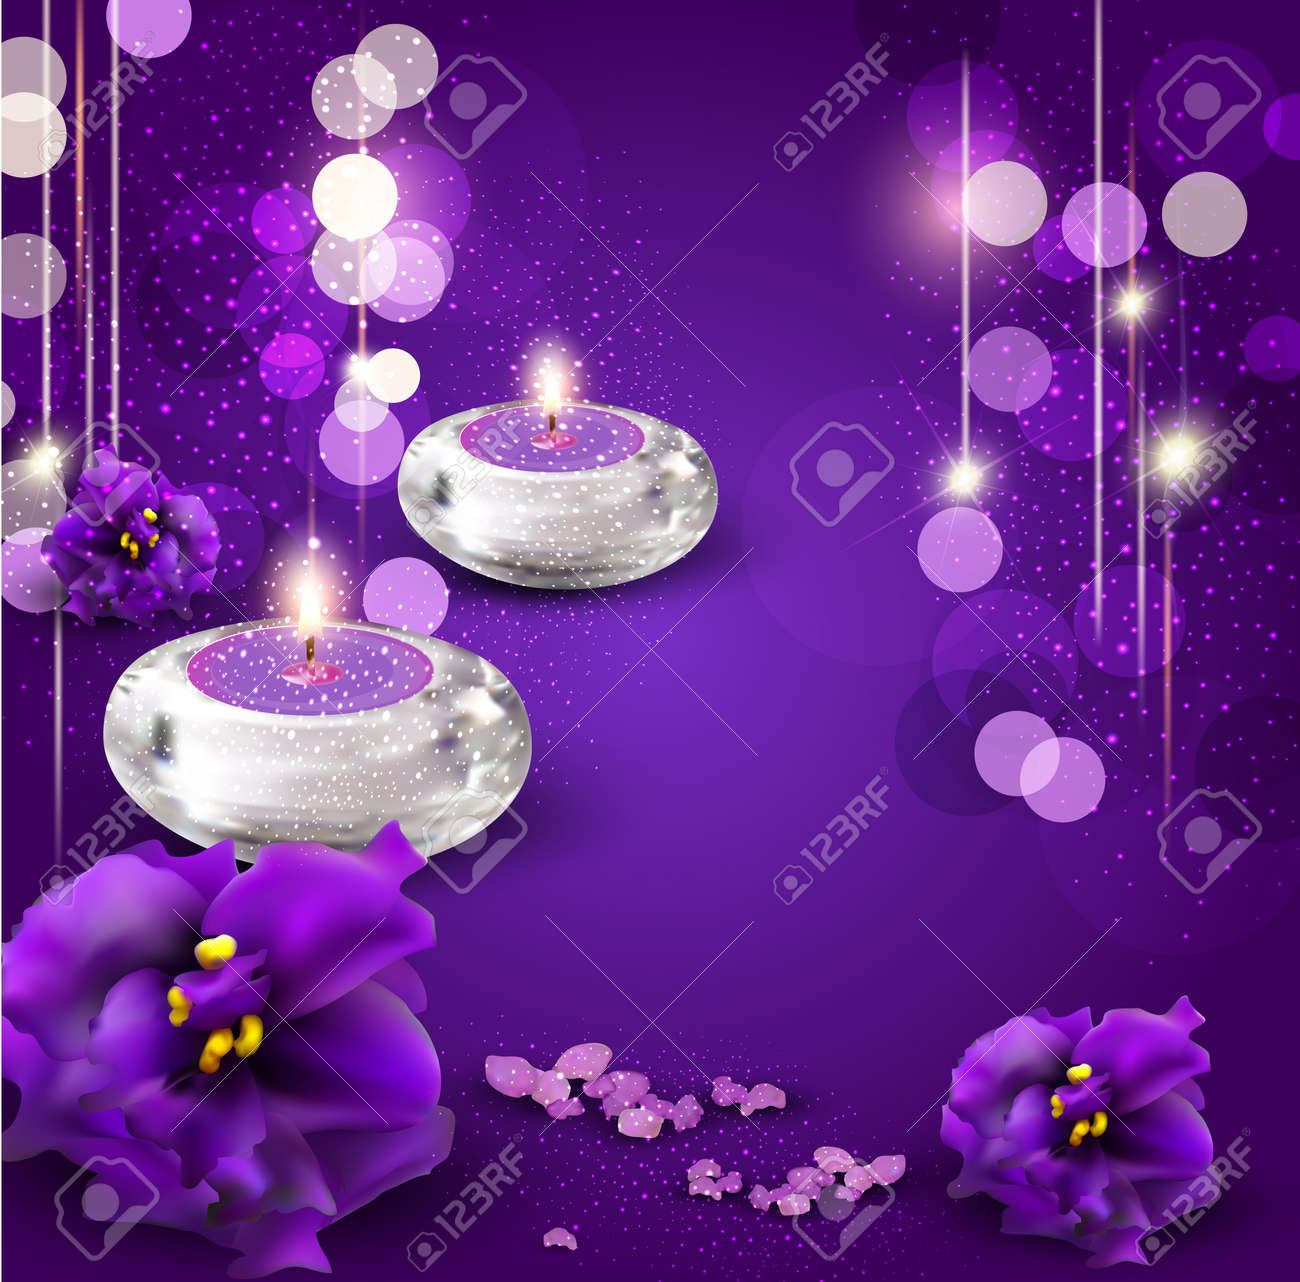 vector background with romantic candles and violets on purple background Stock Vector - 13109663